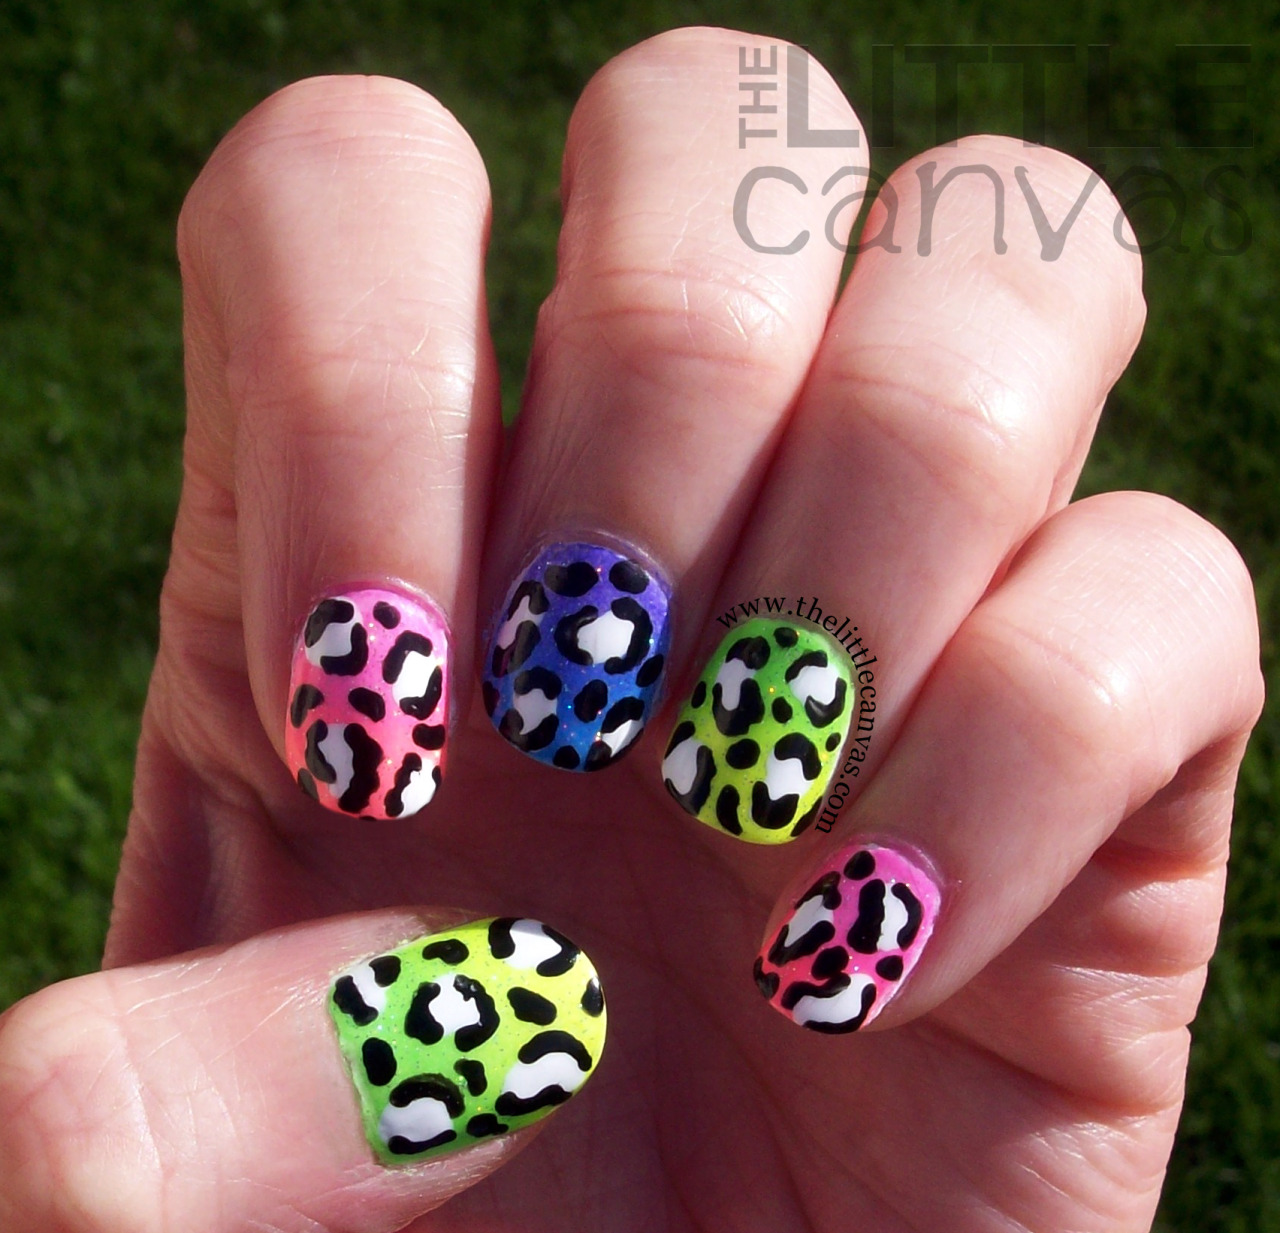 thelittlecanvas:  Neon polishes never photograph properly, le sigh.  This is a neon gradient skittle manicure.  I got the idea from a manicure created by Miss Jen Fabulous on YouTube.  In her manicure, she did huge leopard spots but I opted for smaller ones :) Click the picture for more details :)